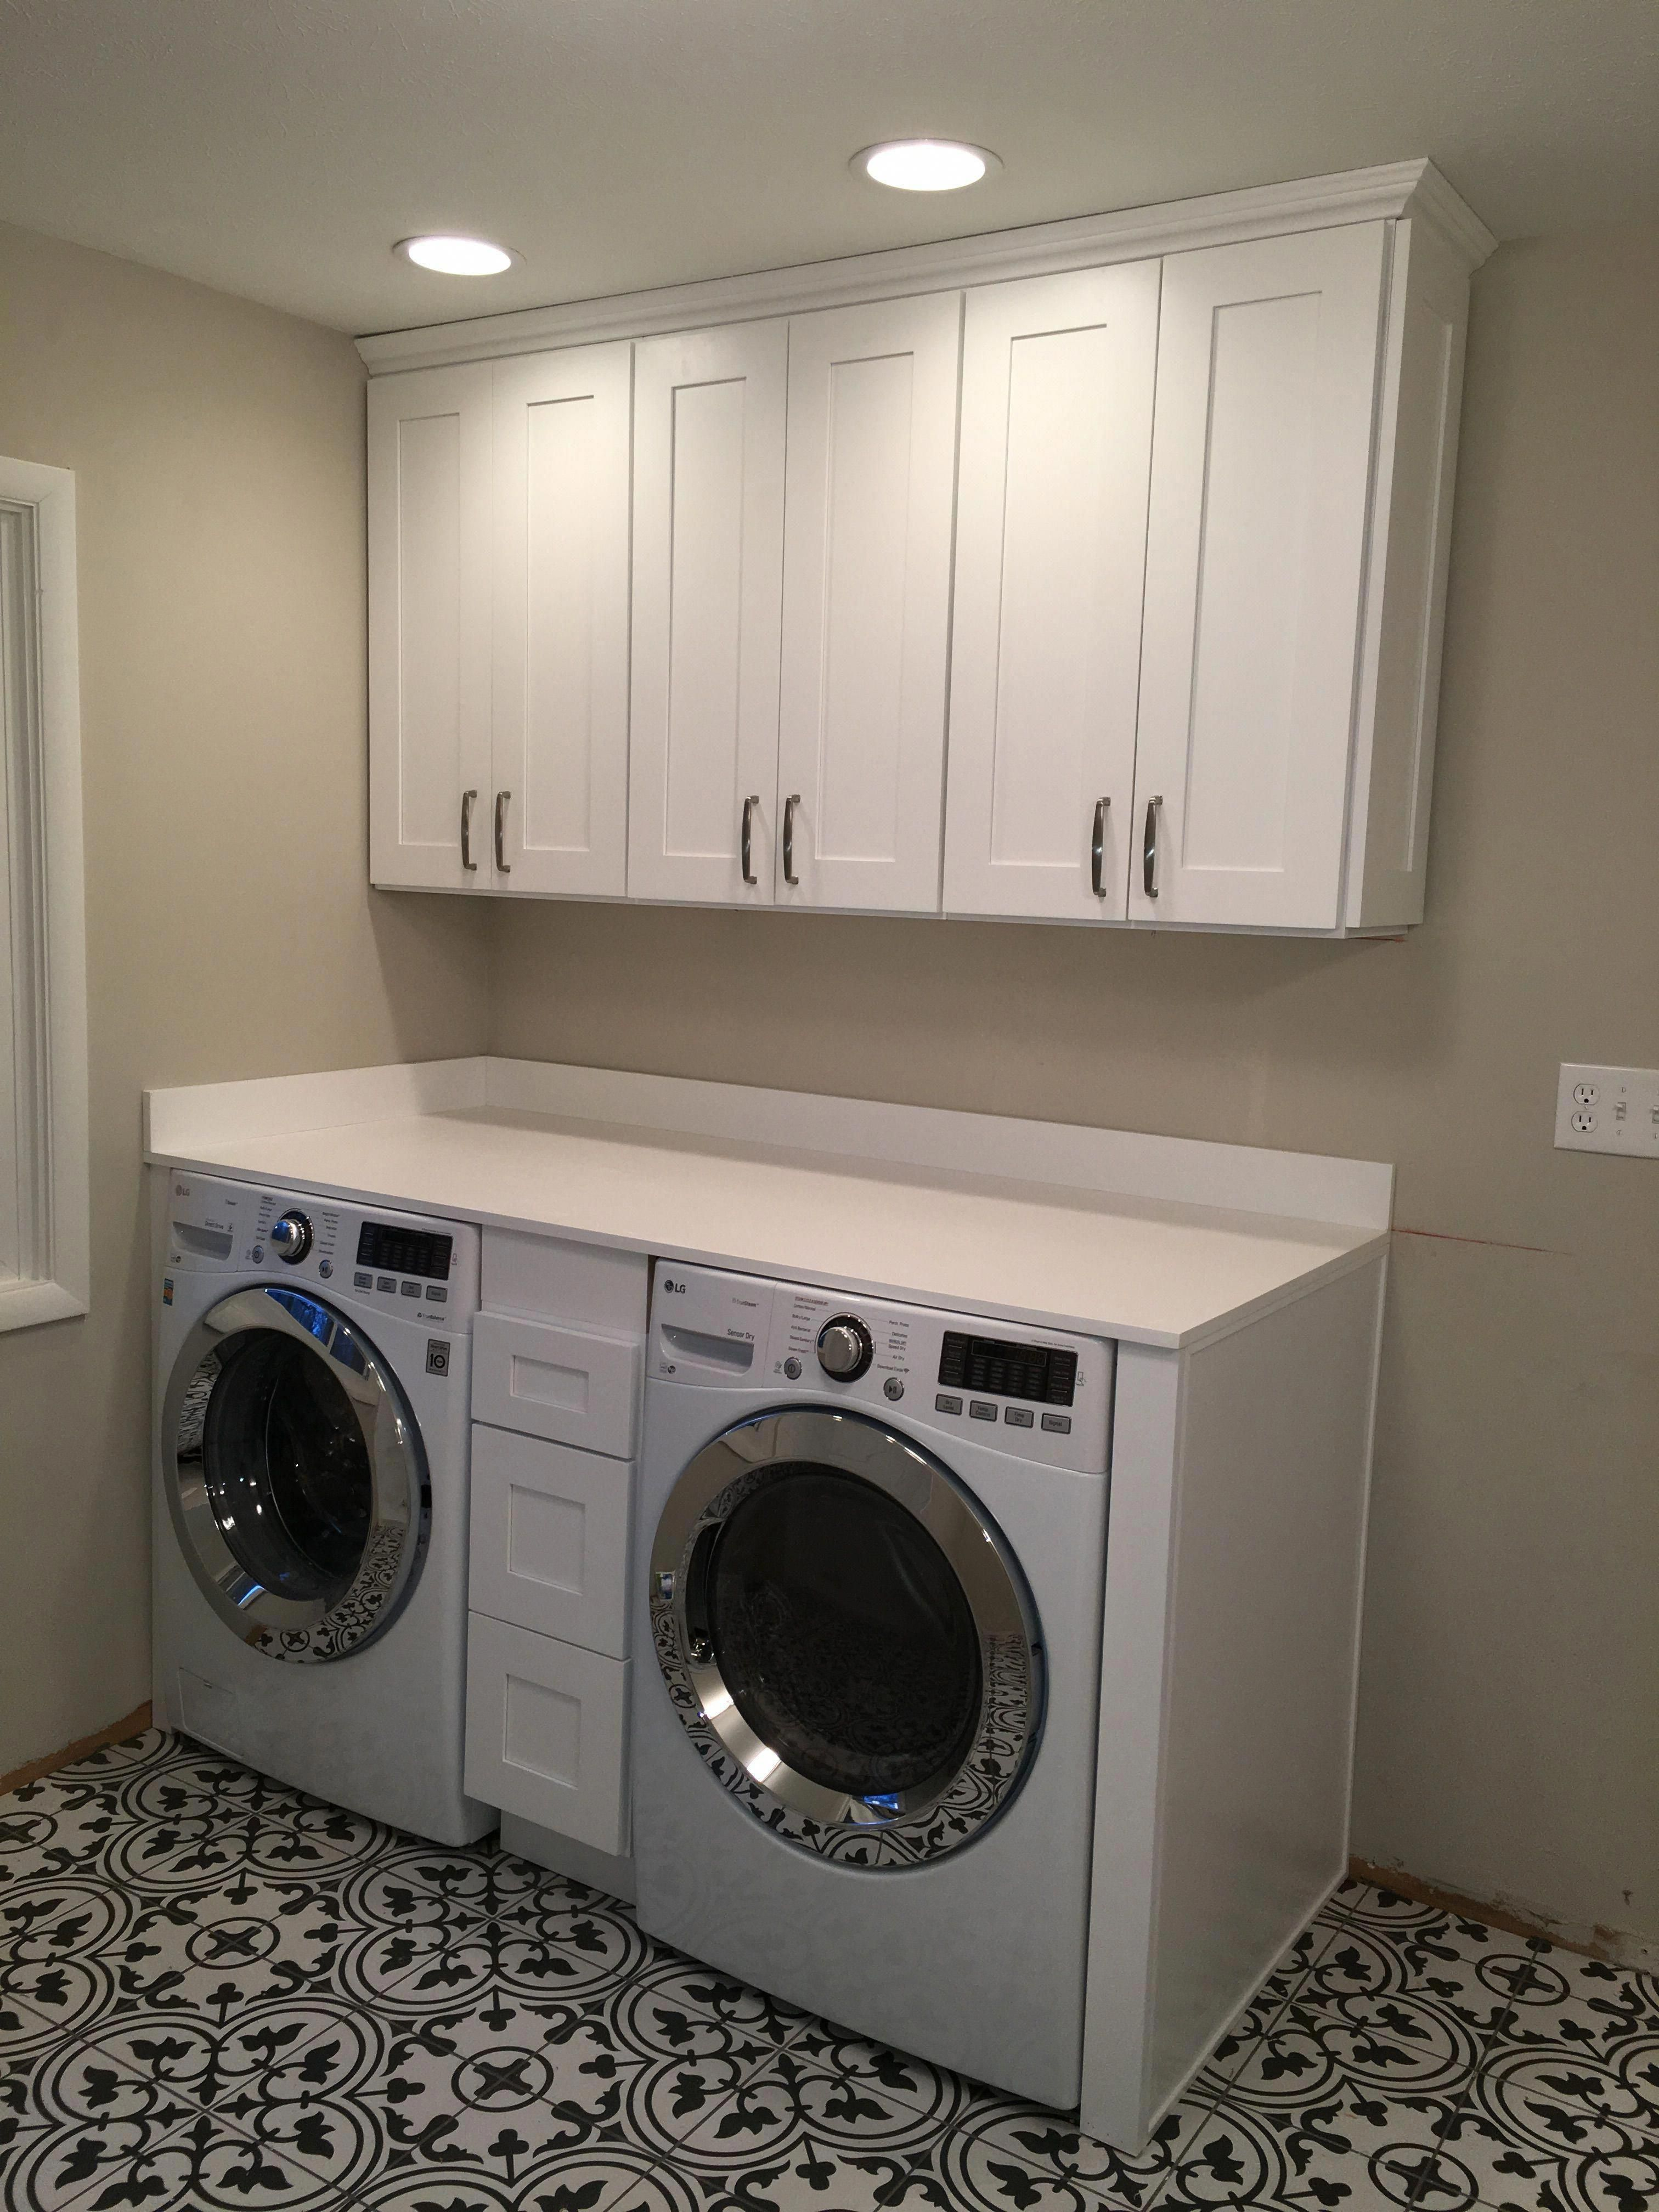 Find Out More Details On Laundry Room Storage Ideas Look Into Our Web Site Laundryro Laundry Room Storage Laundry Room Storage Shelves Laundry Room Design